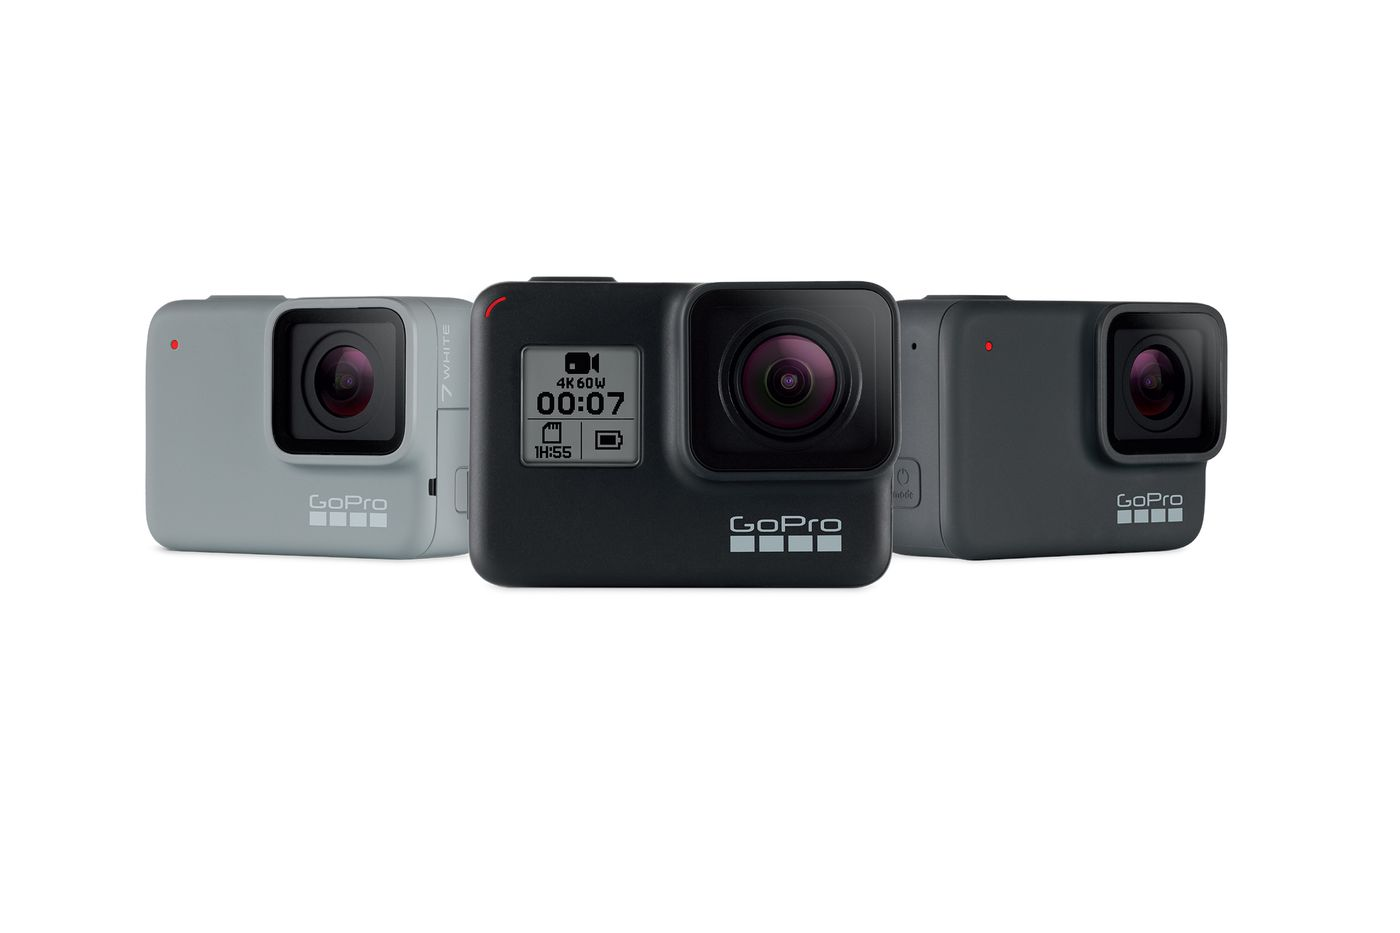 Gopro S Hero 7 Black Sets A New Bar For Video Stabilization The Verge